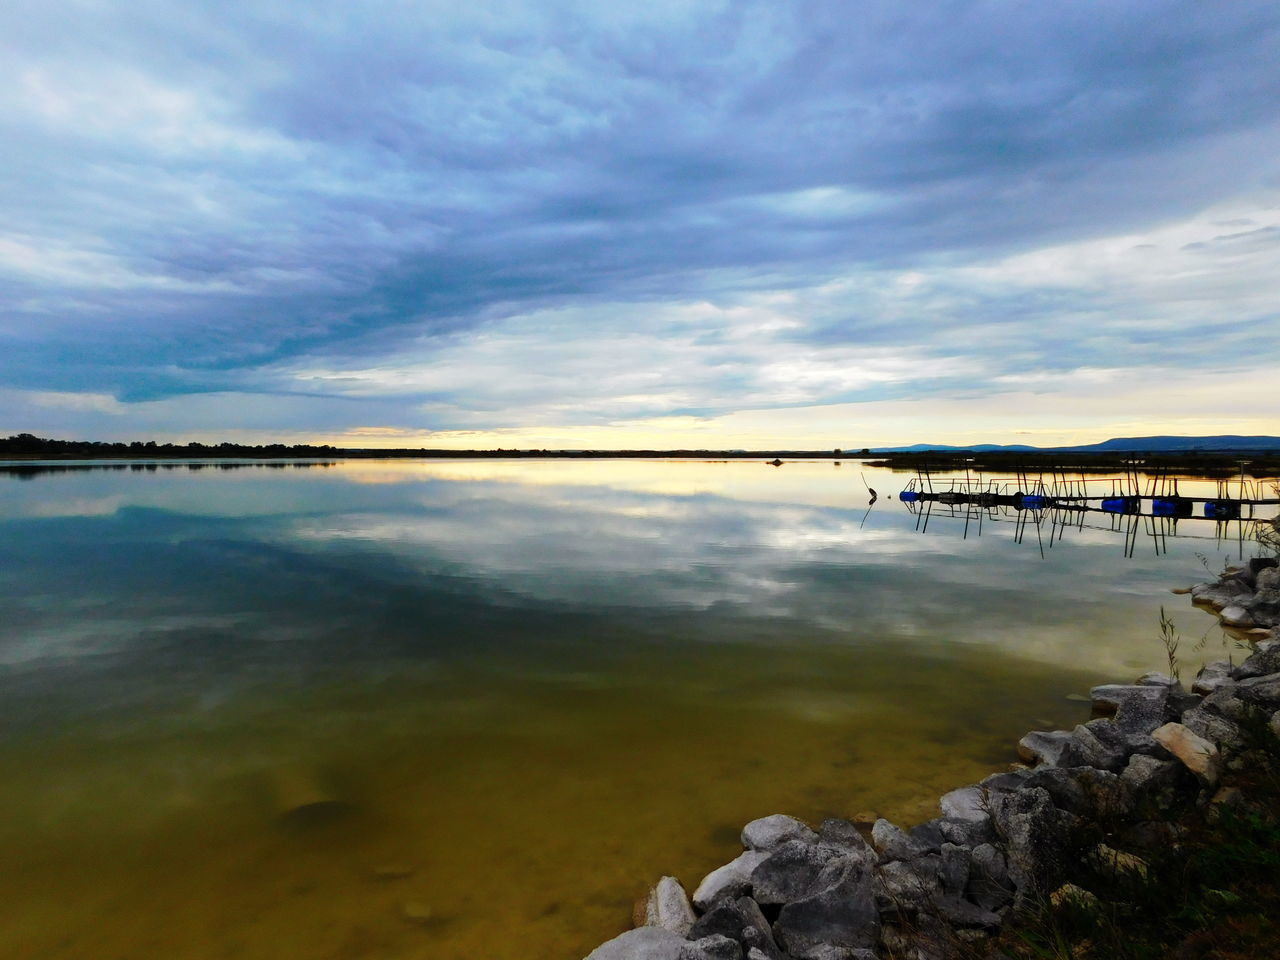 sky, cloud - sky, water, built structure, architecture, tranquil scene, scenics, nature, tranquility, reflection, beauty in nature, sea, outdoors, no people, day